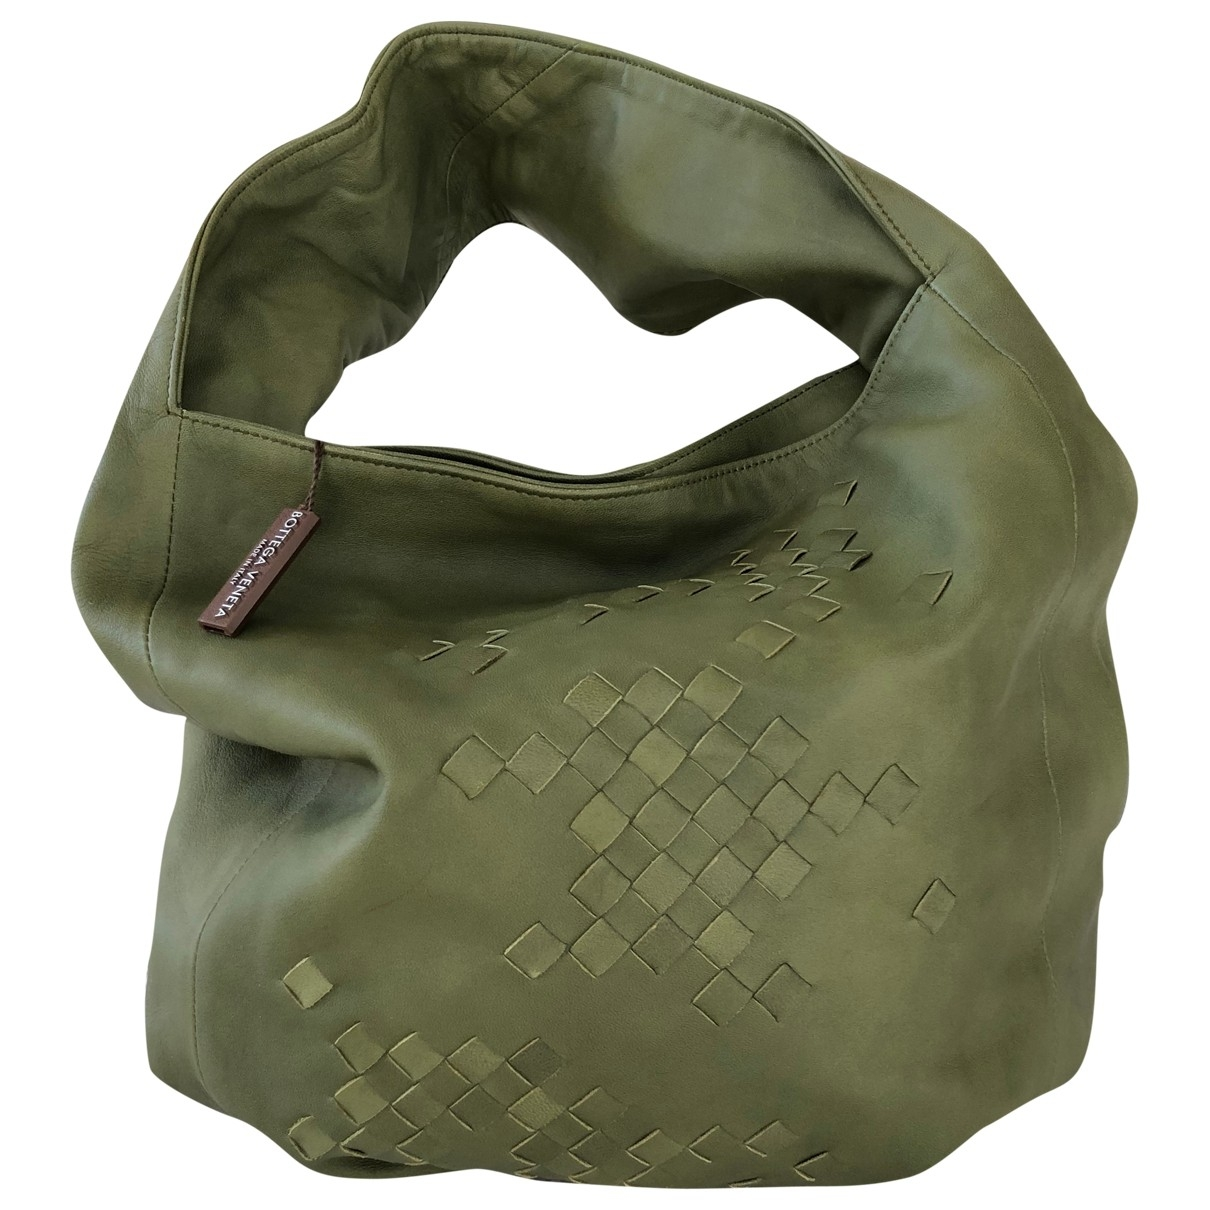 Bottega Veneta \N Green Leather handbag for Women \N